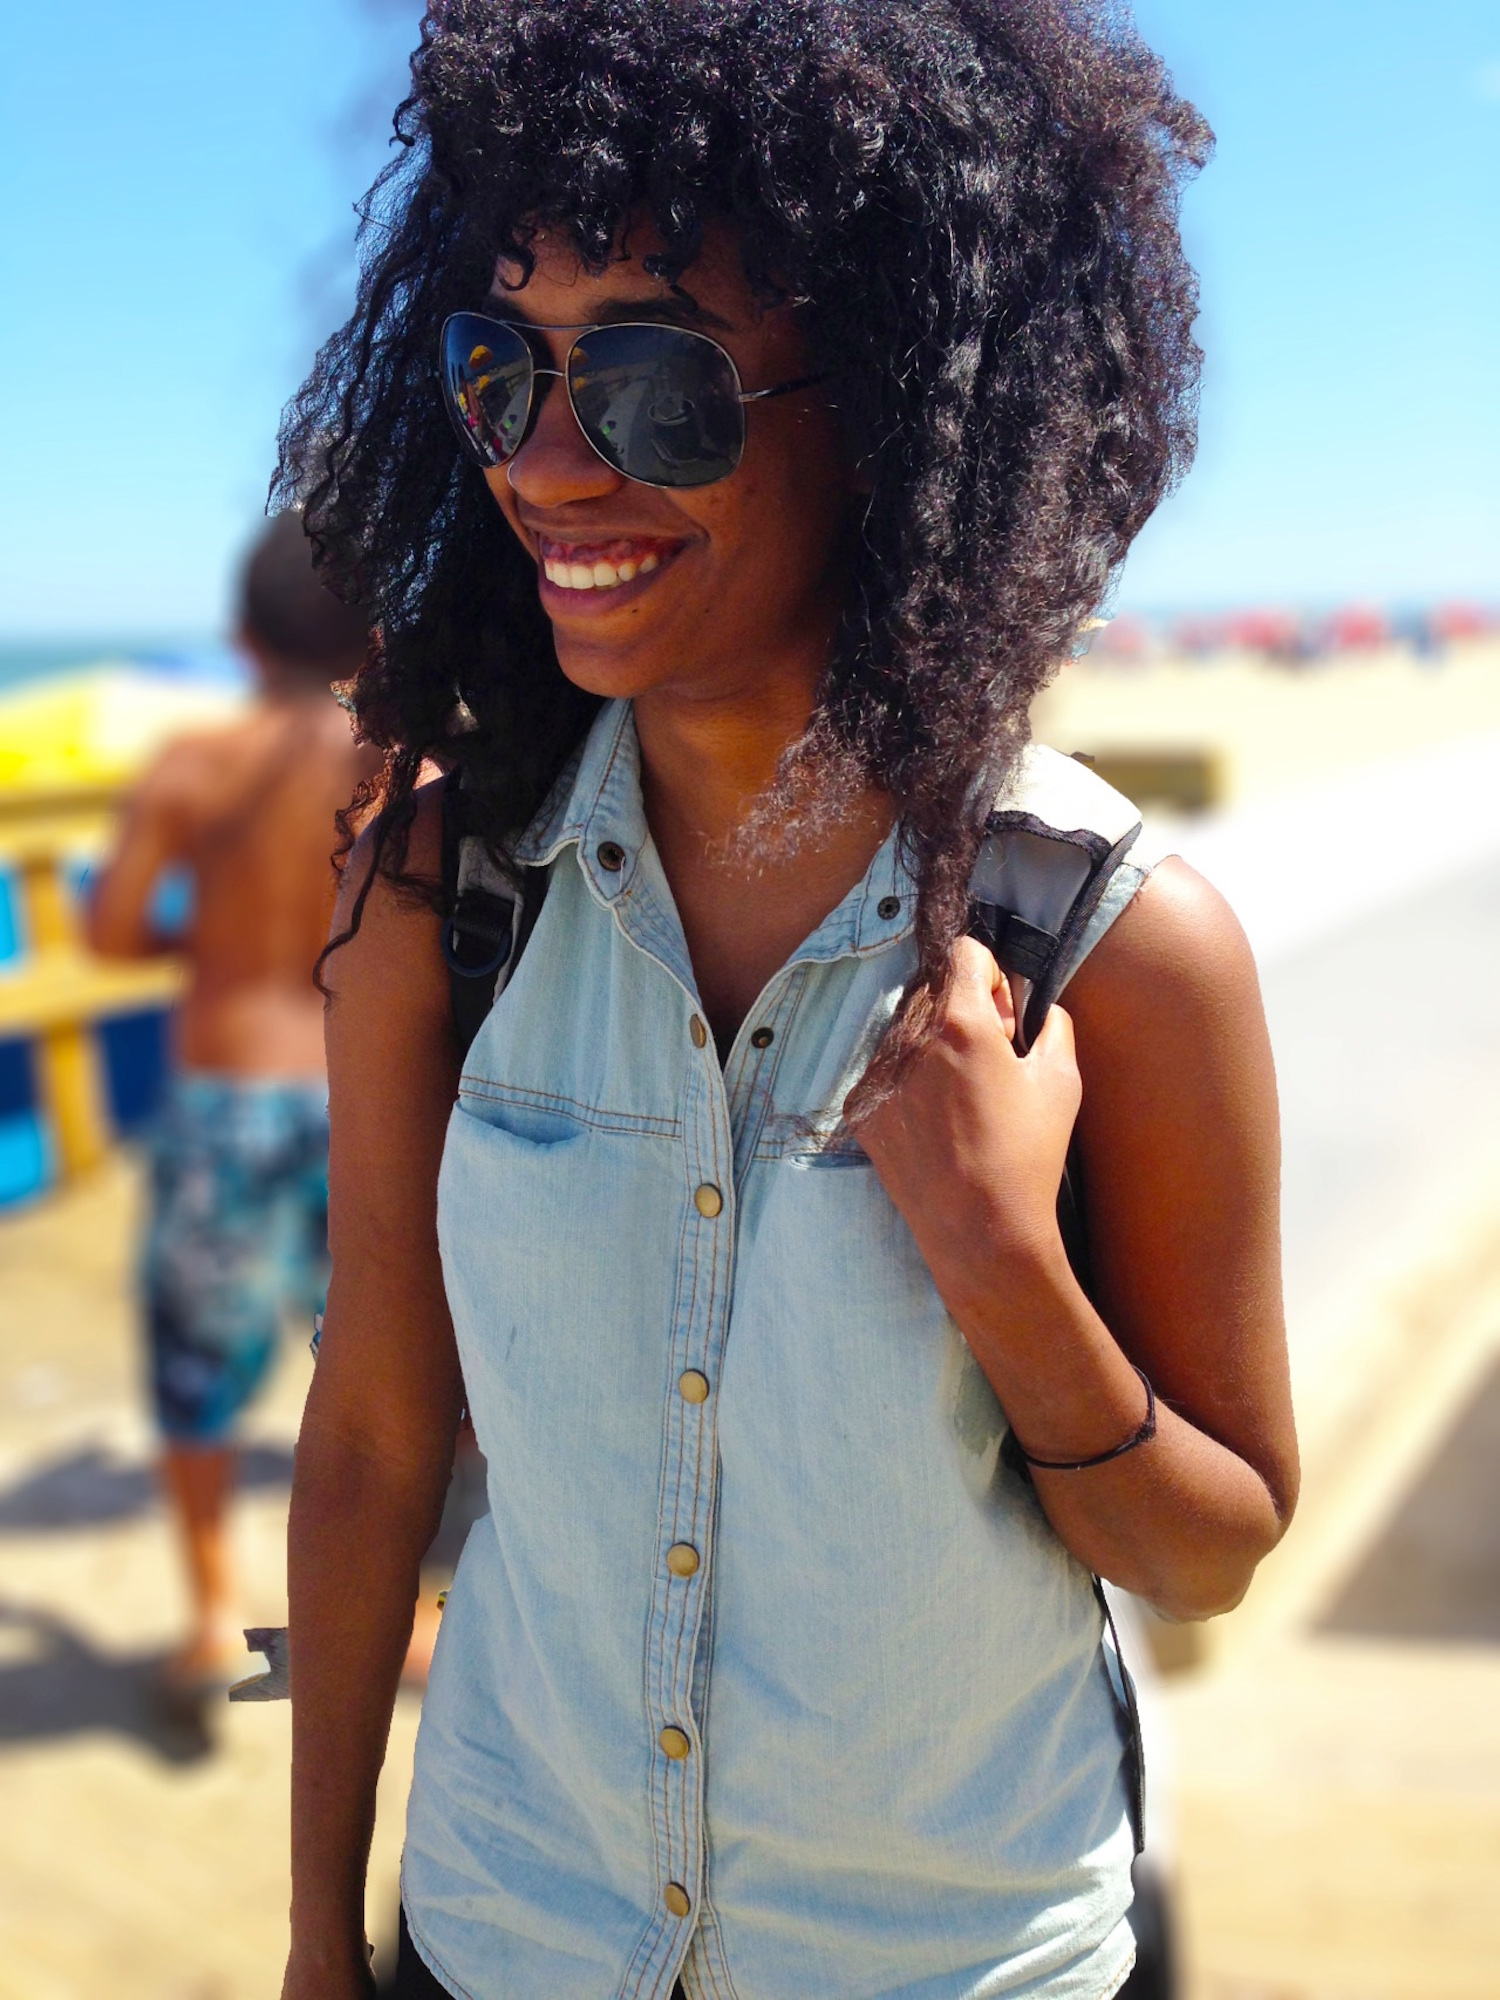 Solo travel for Black women - a smiling Black woman with a backpack on